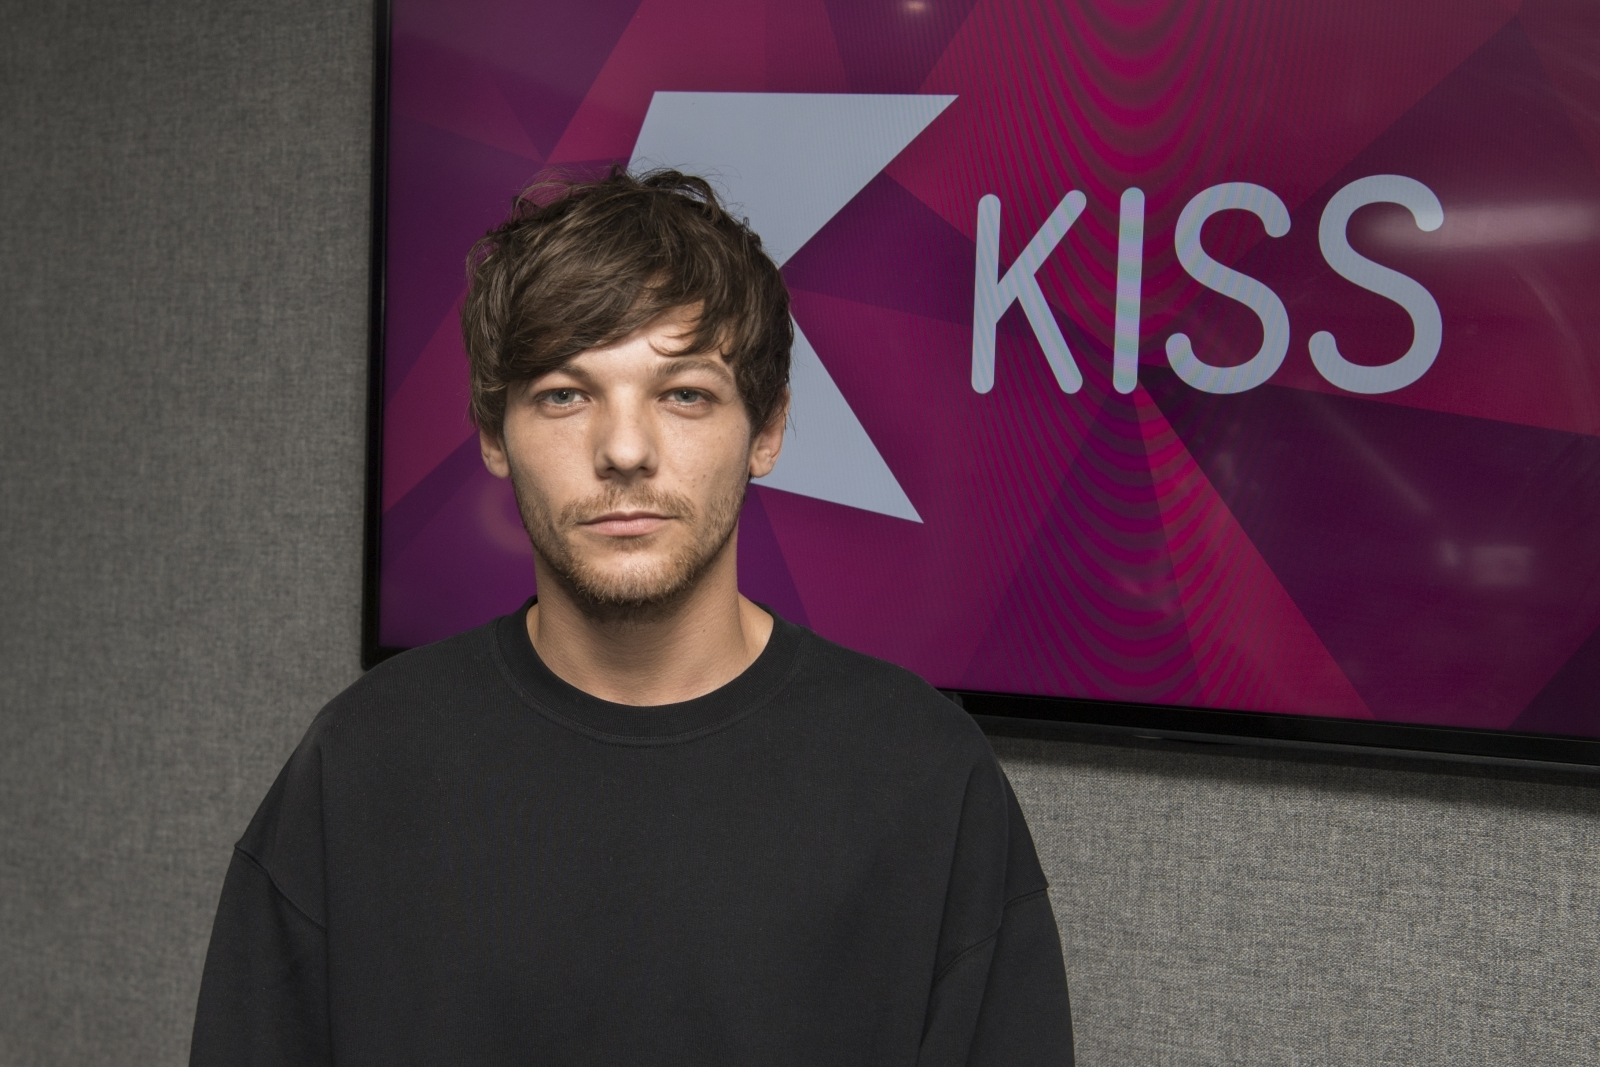 Louis Tomlinson says 'keeping busy' has helped tackle heartache